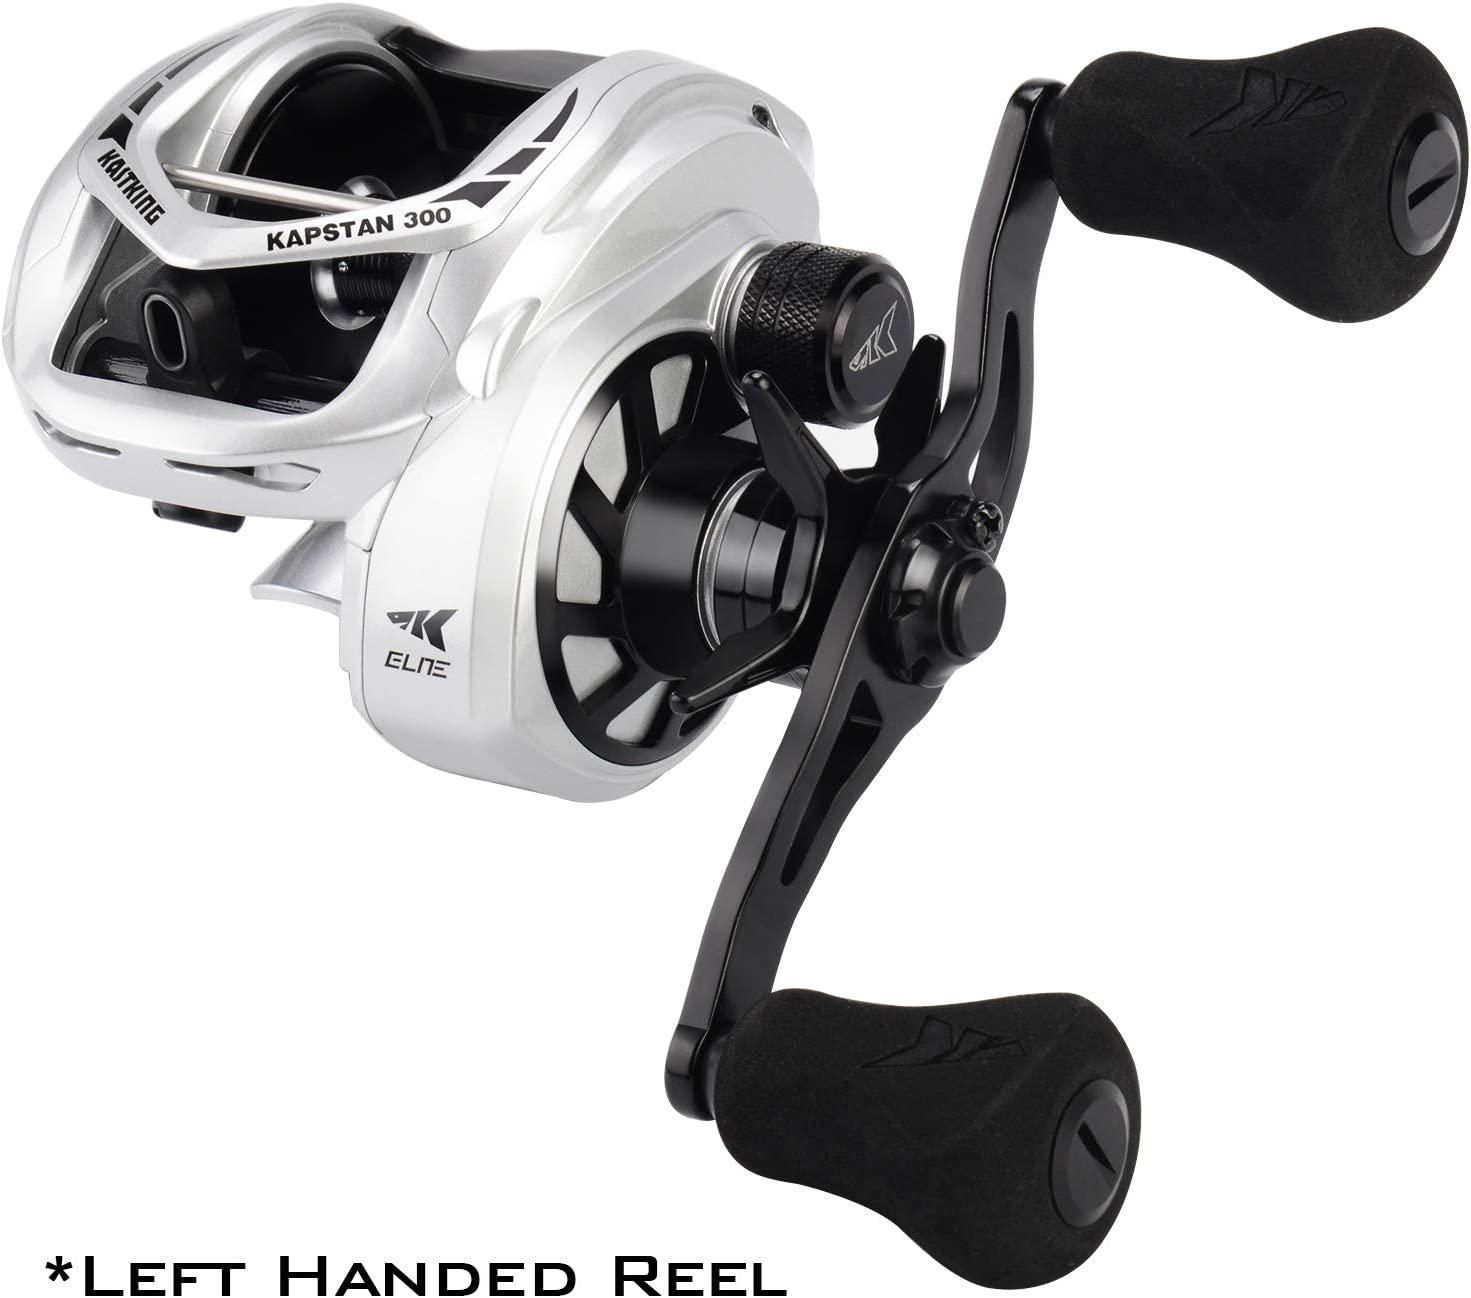 best musky reel: KastKing Kapstan Elite Size 300 Baitcasting Fishing Reel